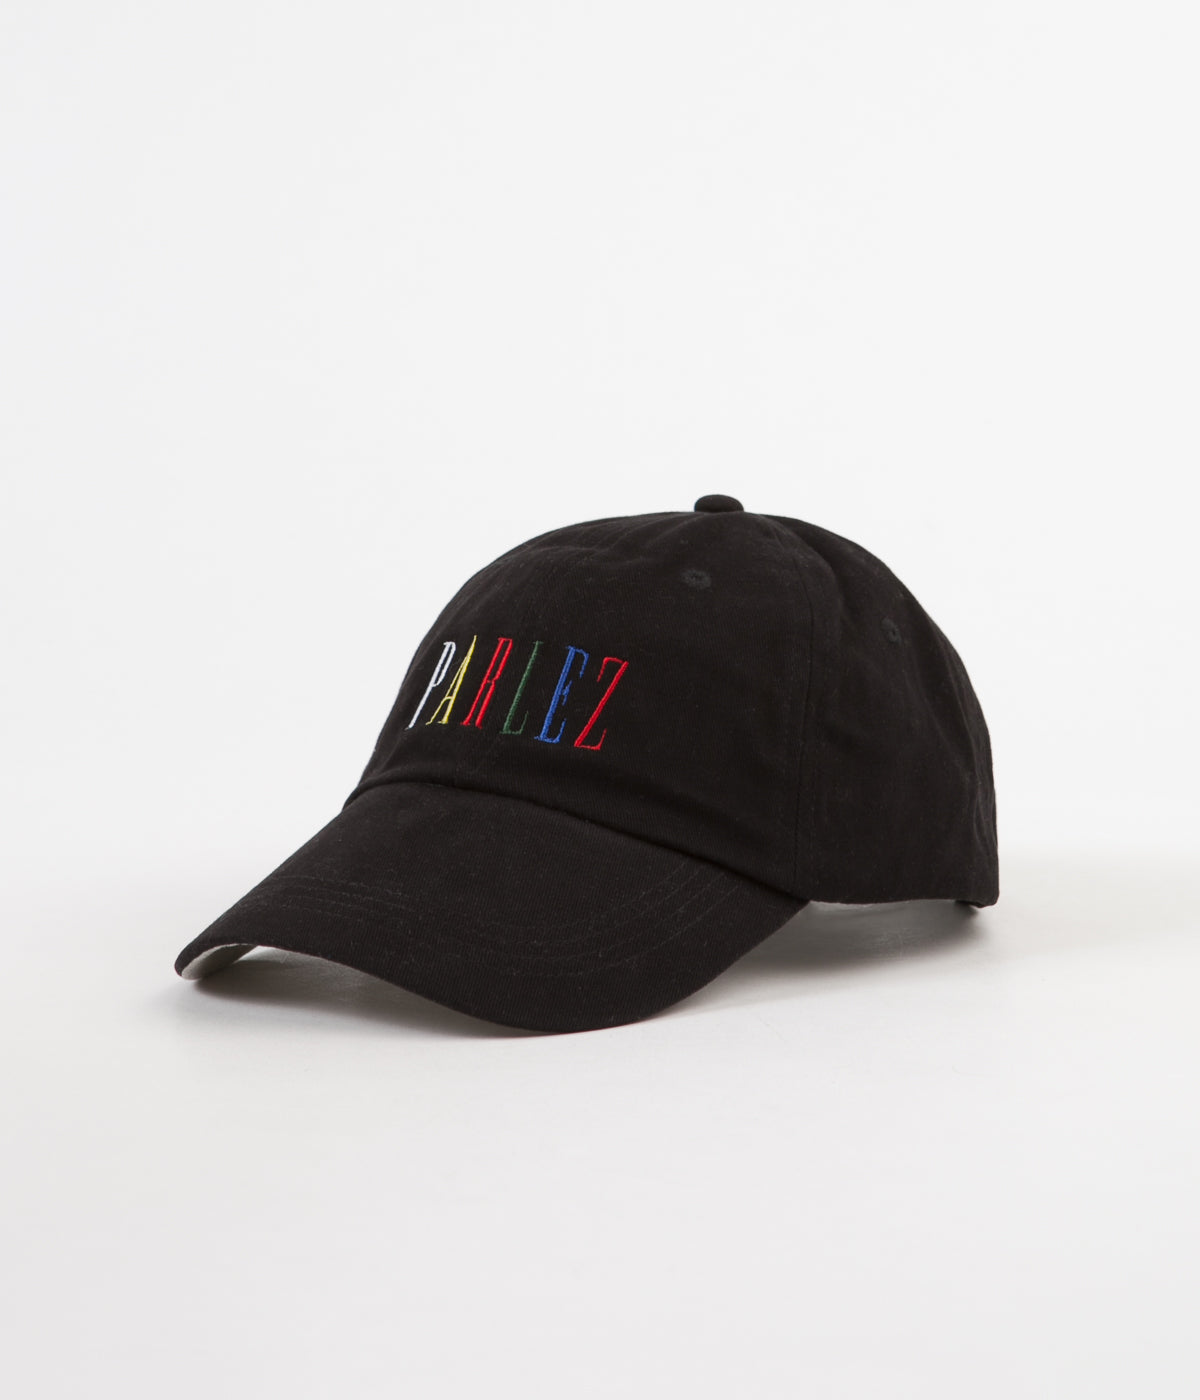 Parlez Tall 6 Panel Cap - Black